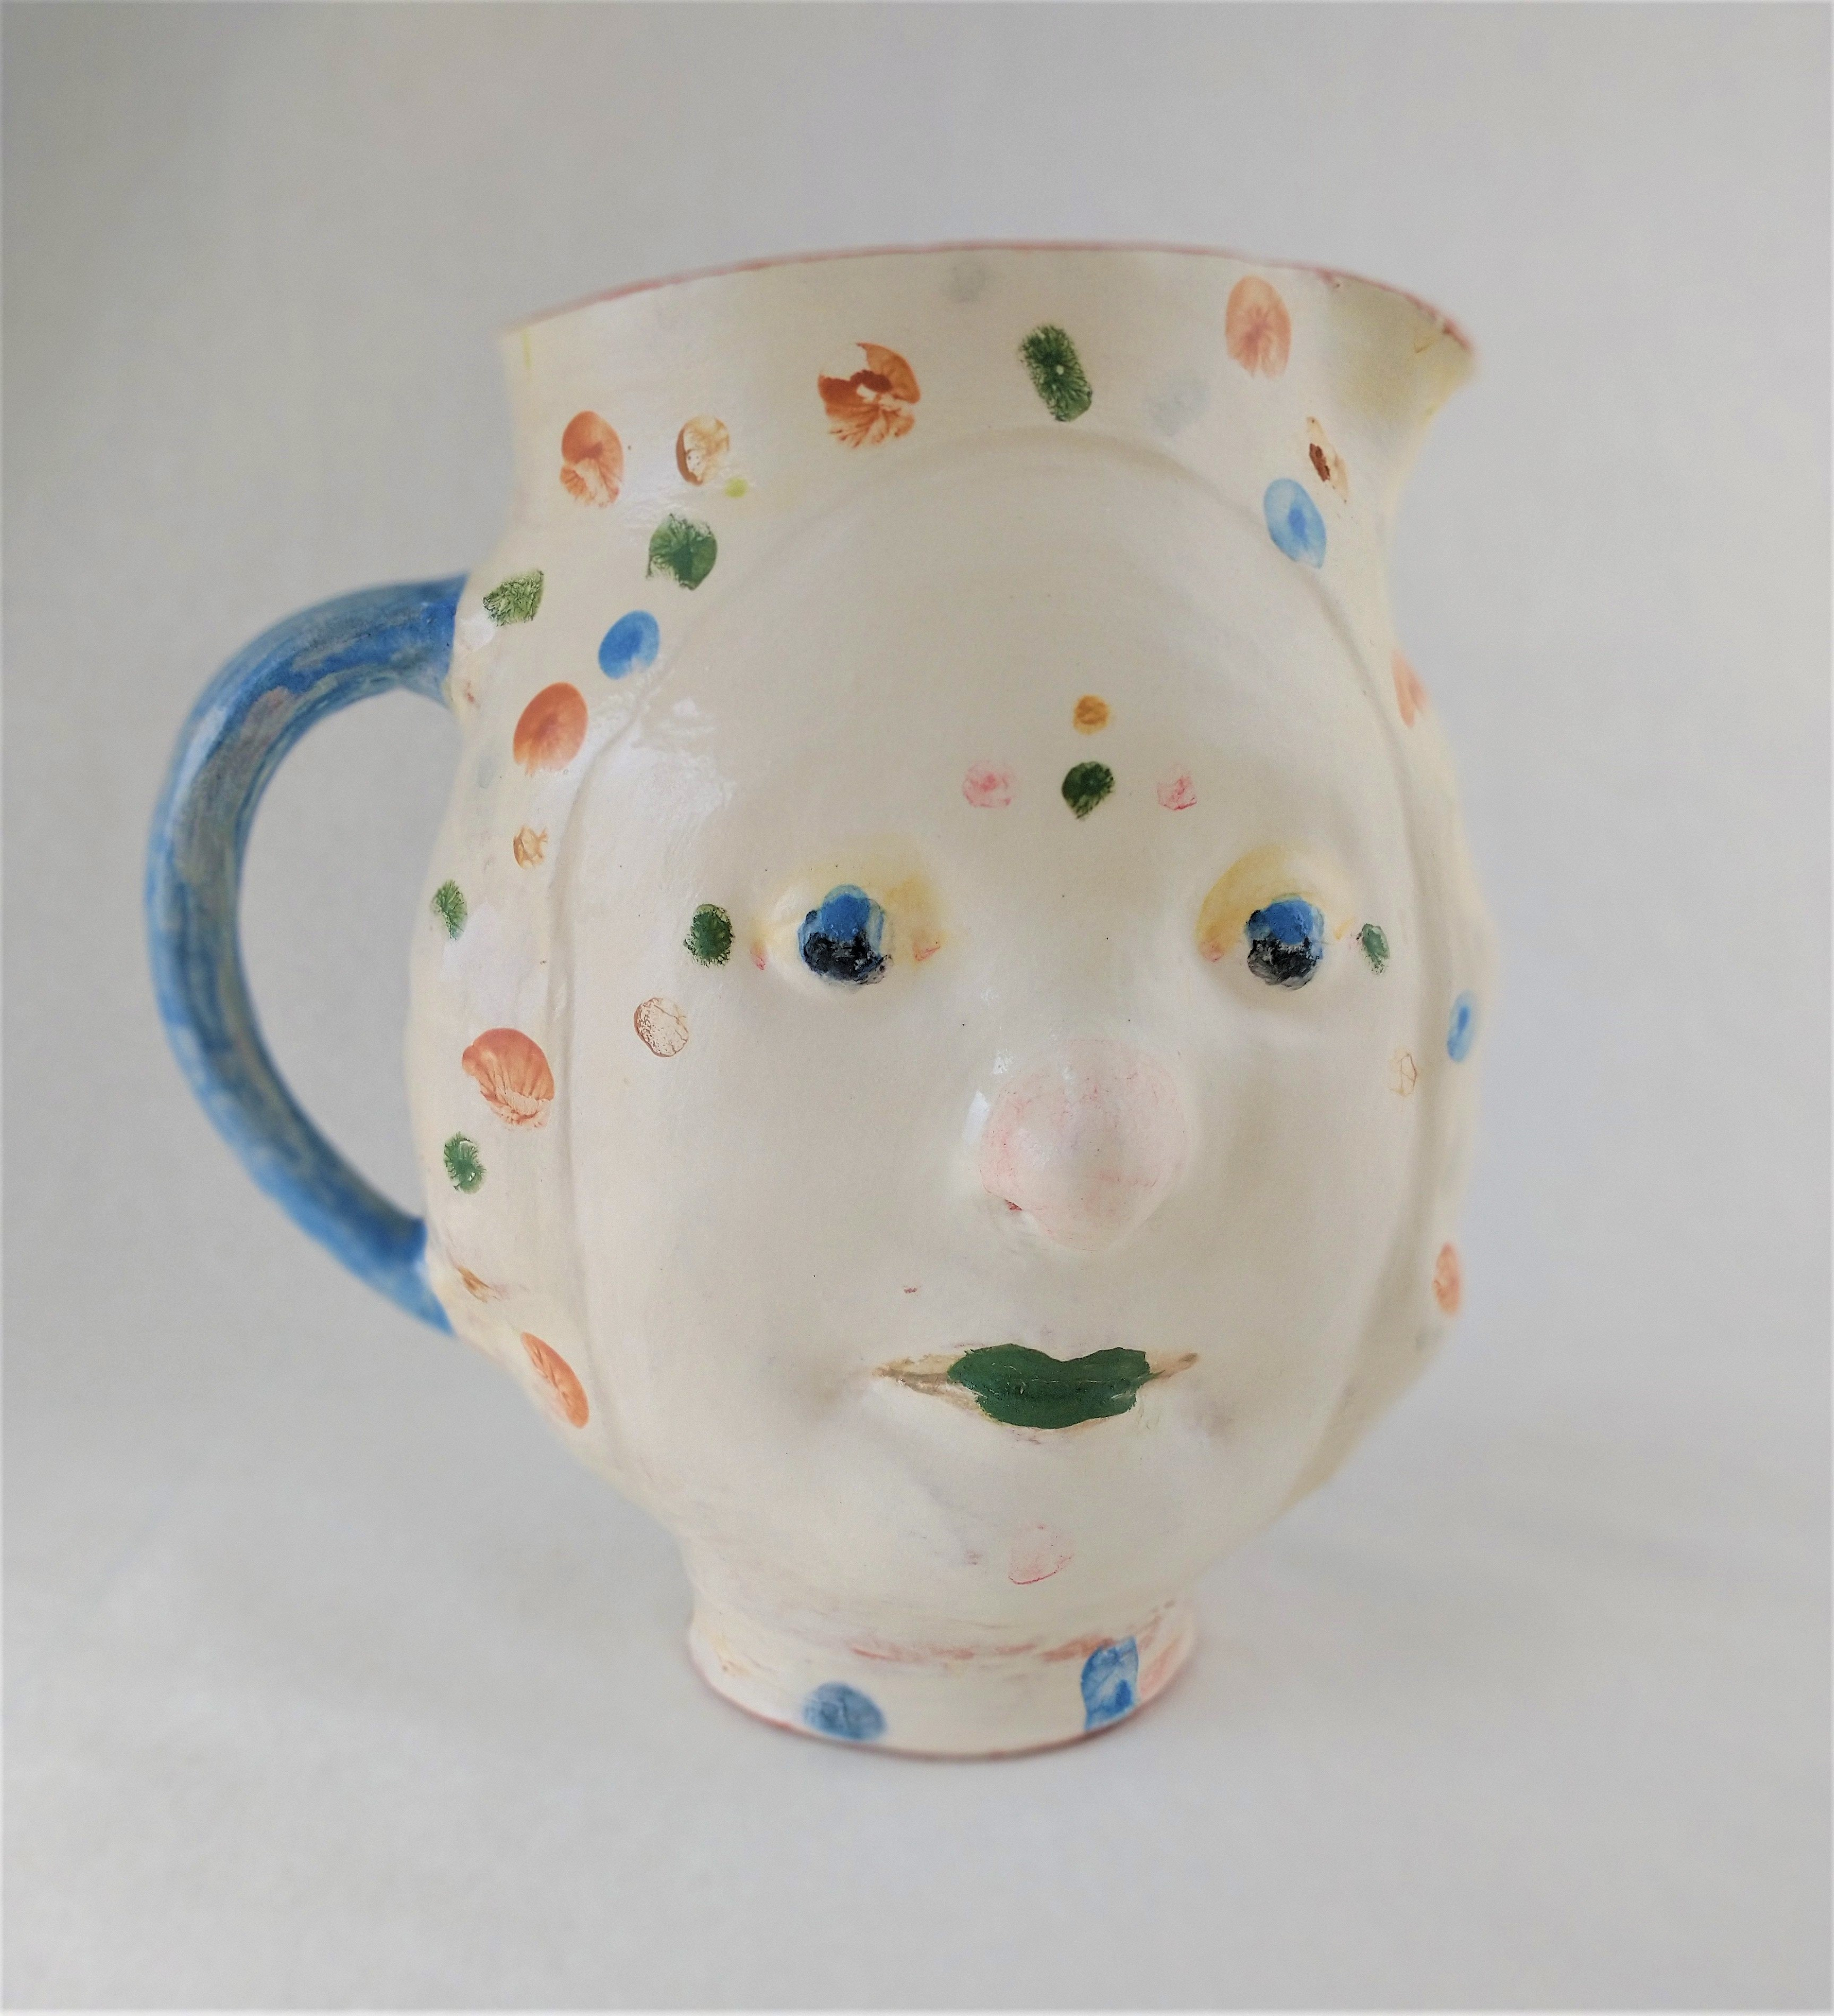 Ceramic jug by Christine Thacker. Courtesy of the artist and AVID Gallery